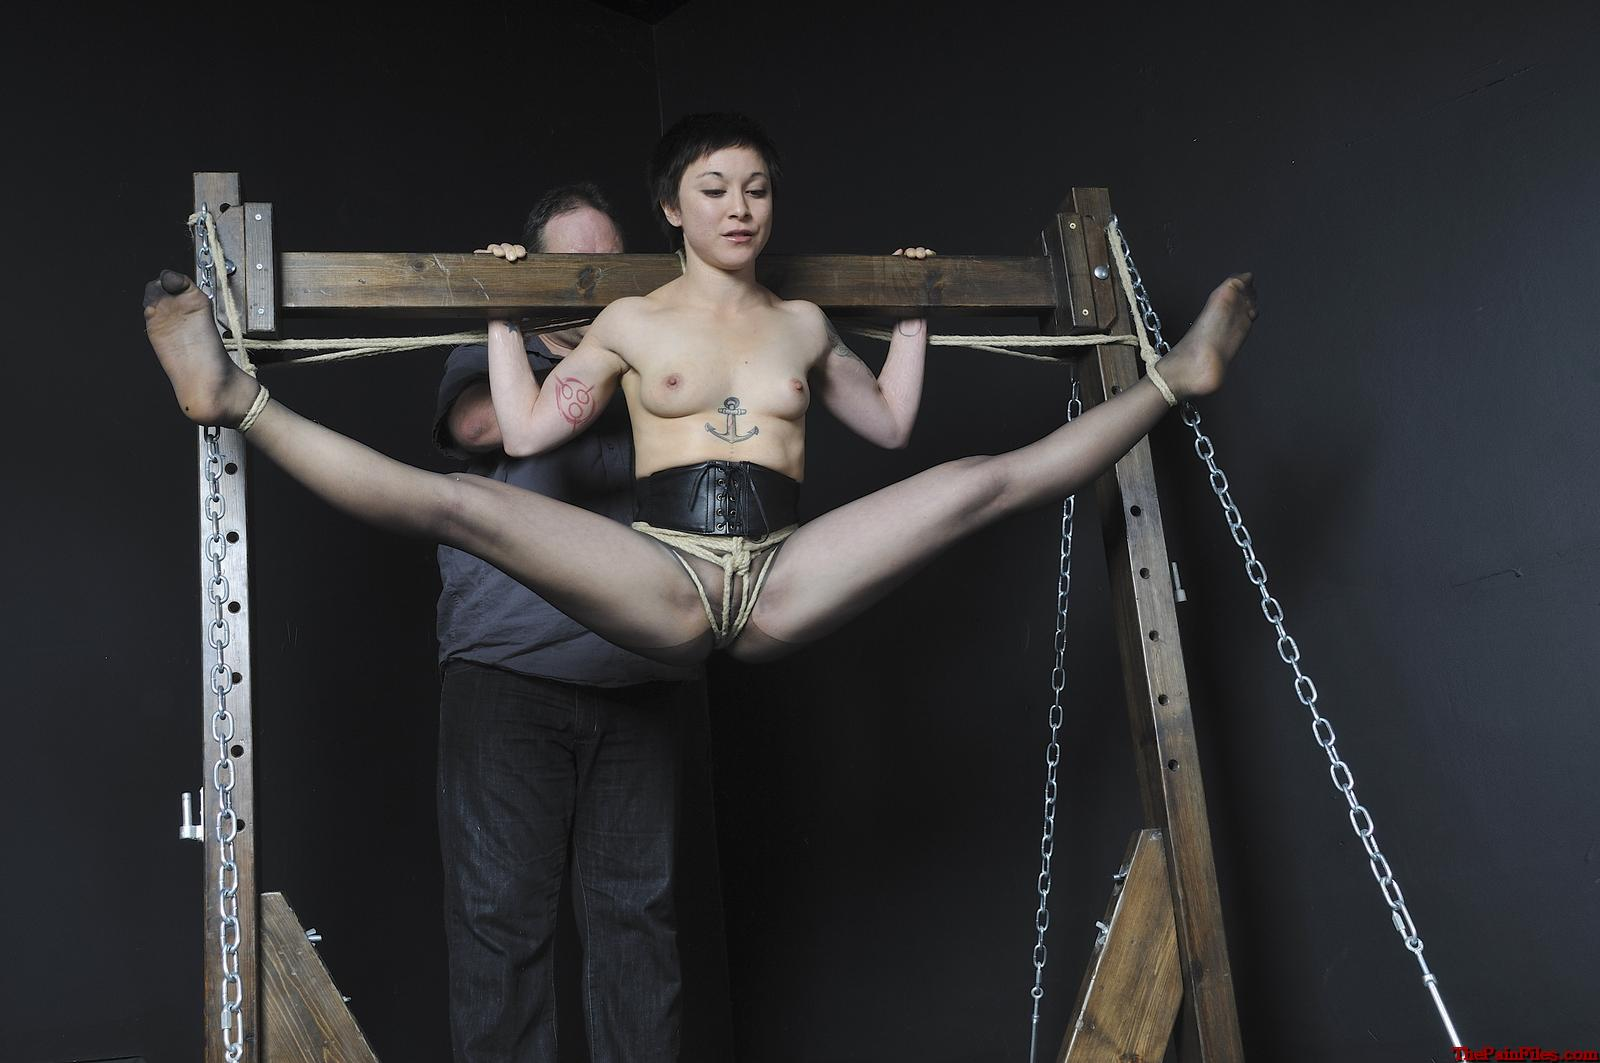 Love fuck girls full suspension bondage this how